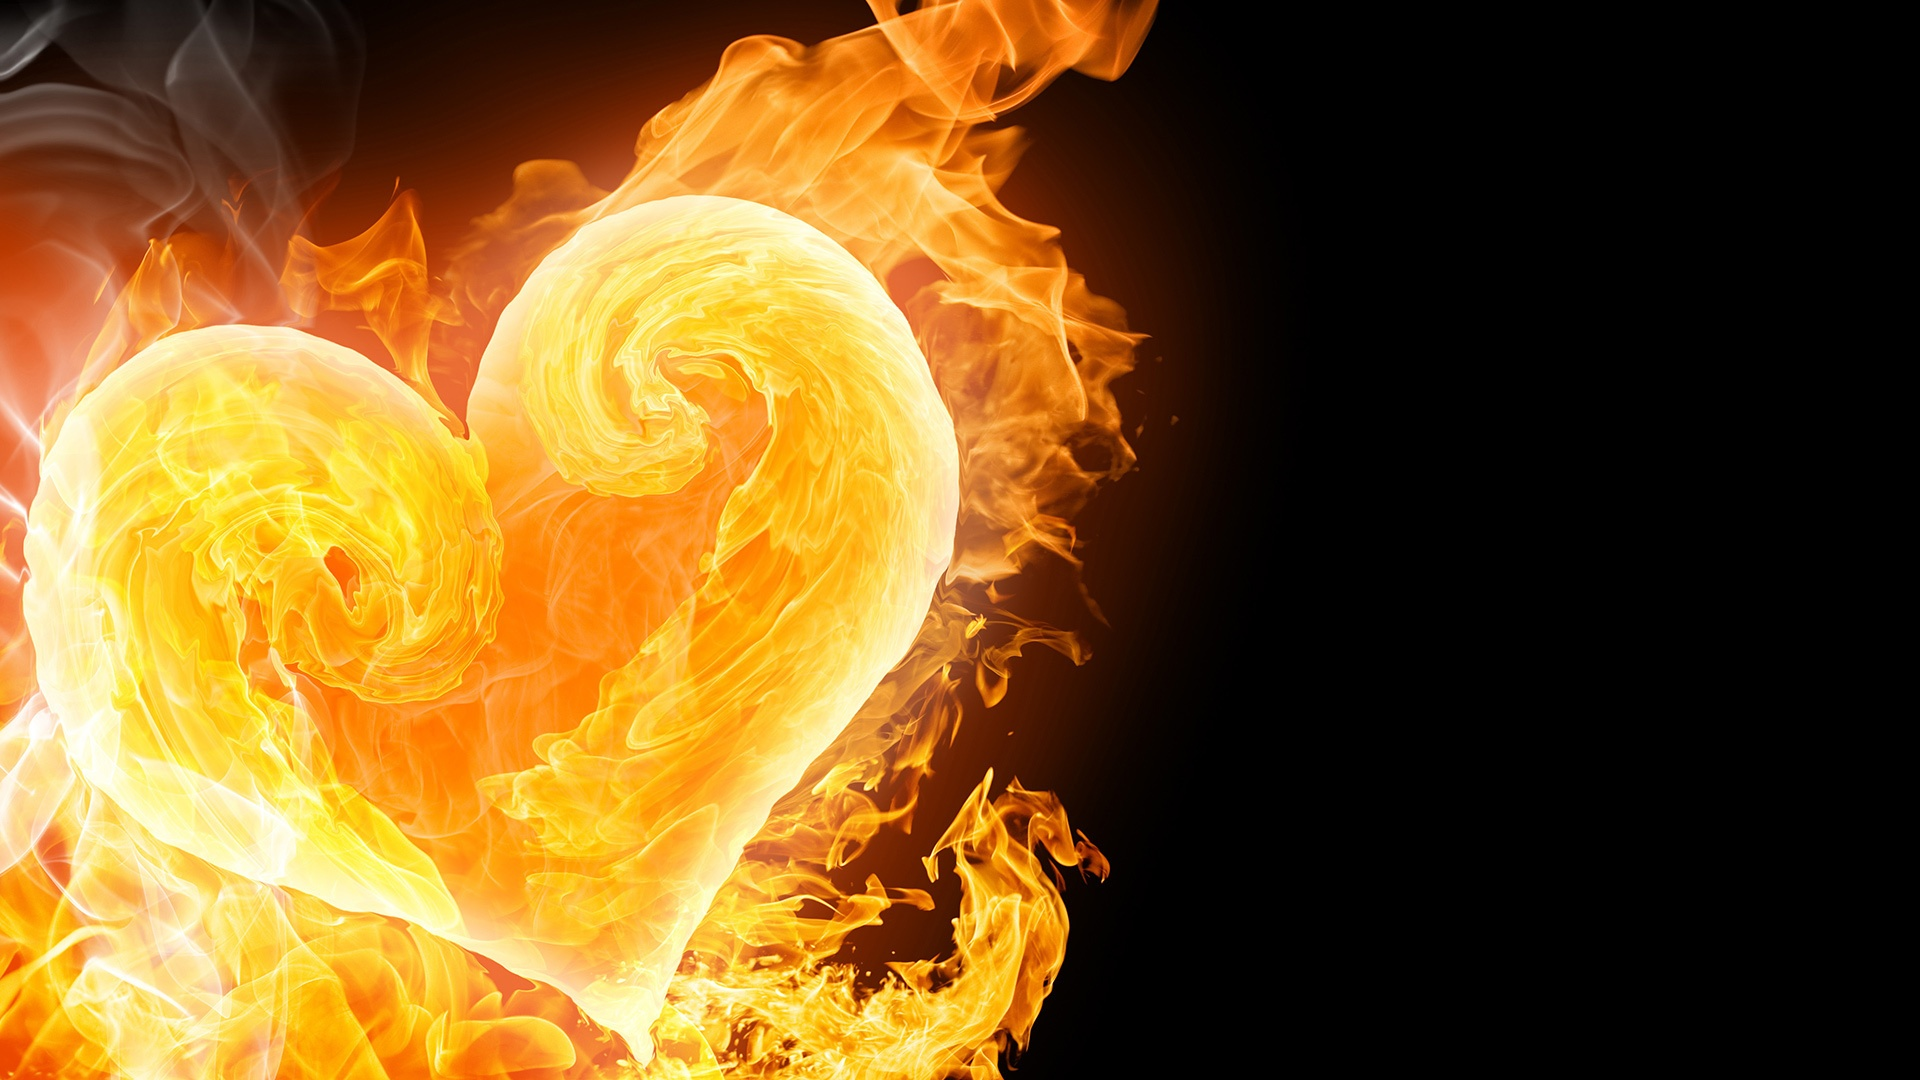 Fantastic Wallpaper Fire Gold - Images-Of-Fire-Wallpapers-029  Photograph_101734 .jpg